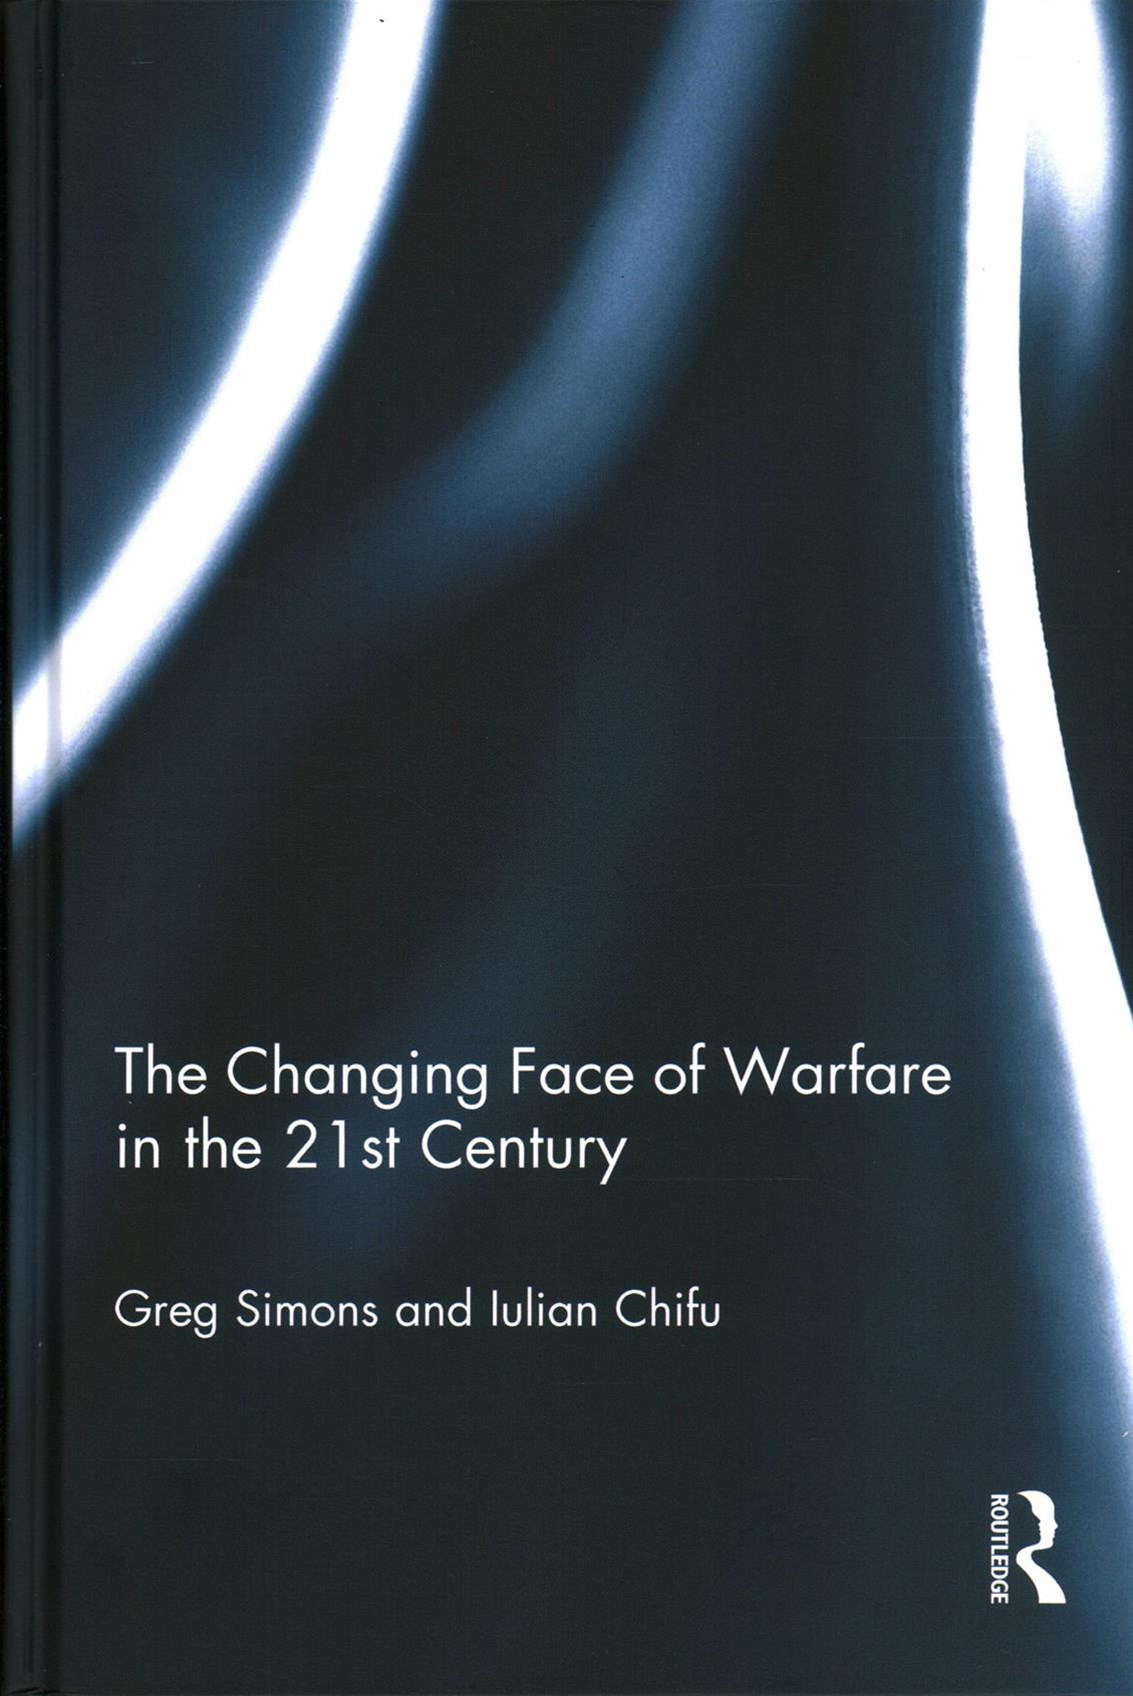 Changing Face of Warfare in the 21st Century